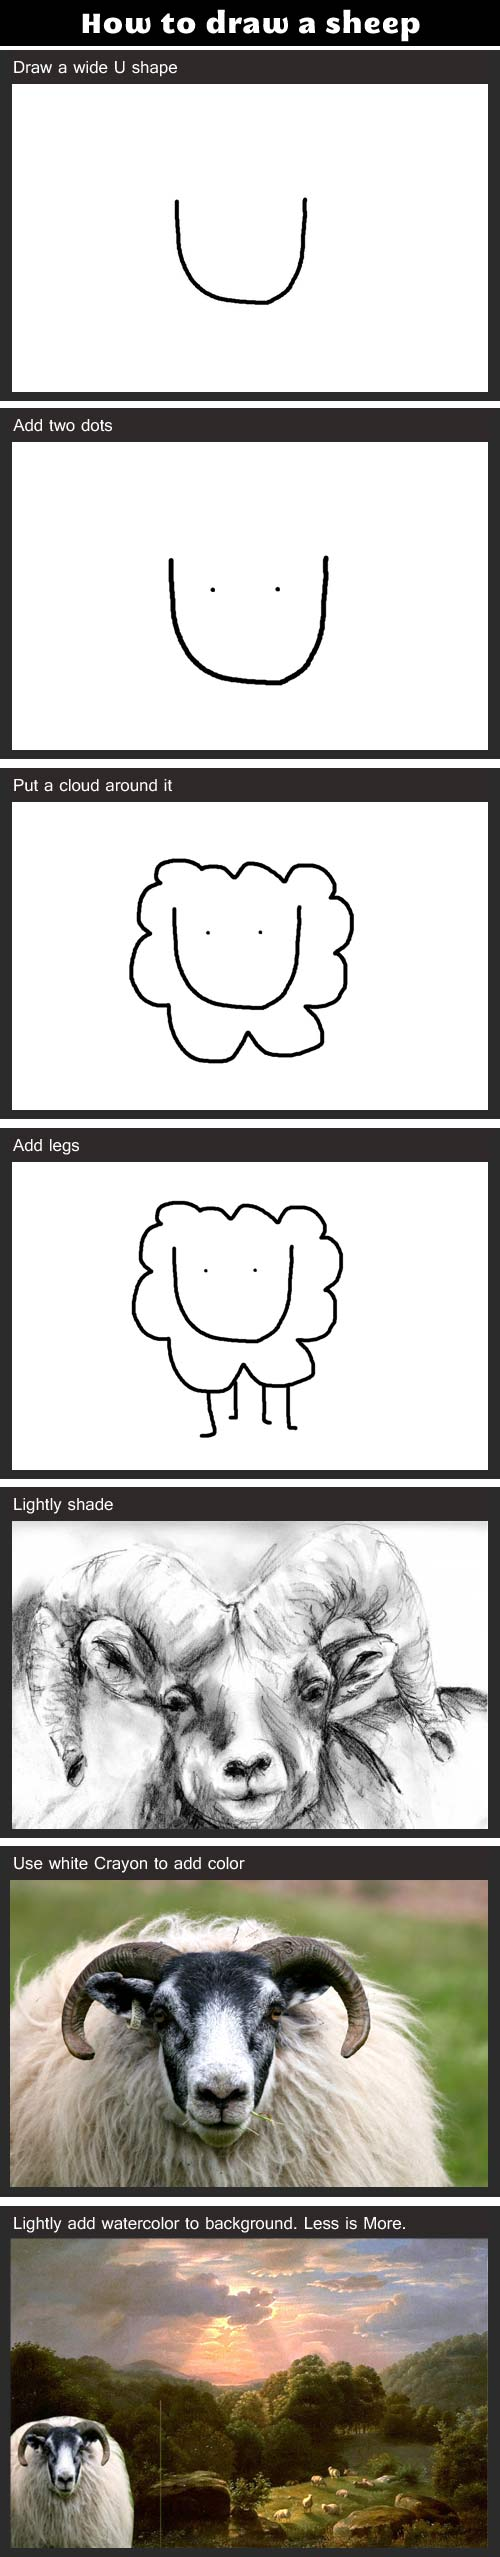 funny-sheep-drawing-pencil-paper